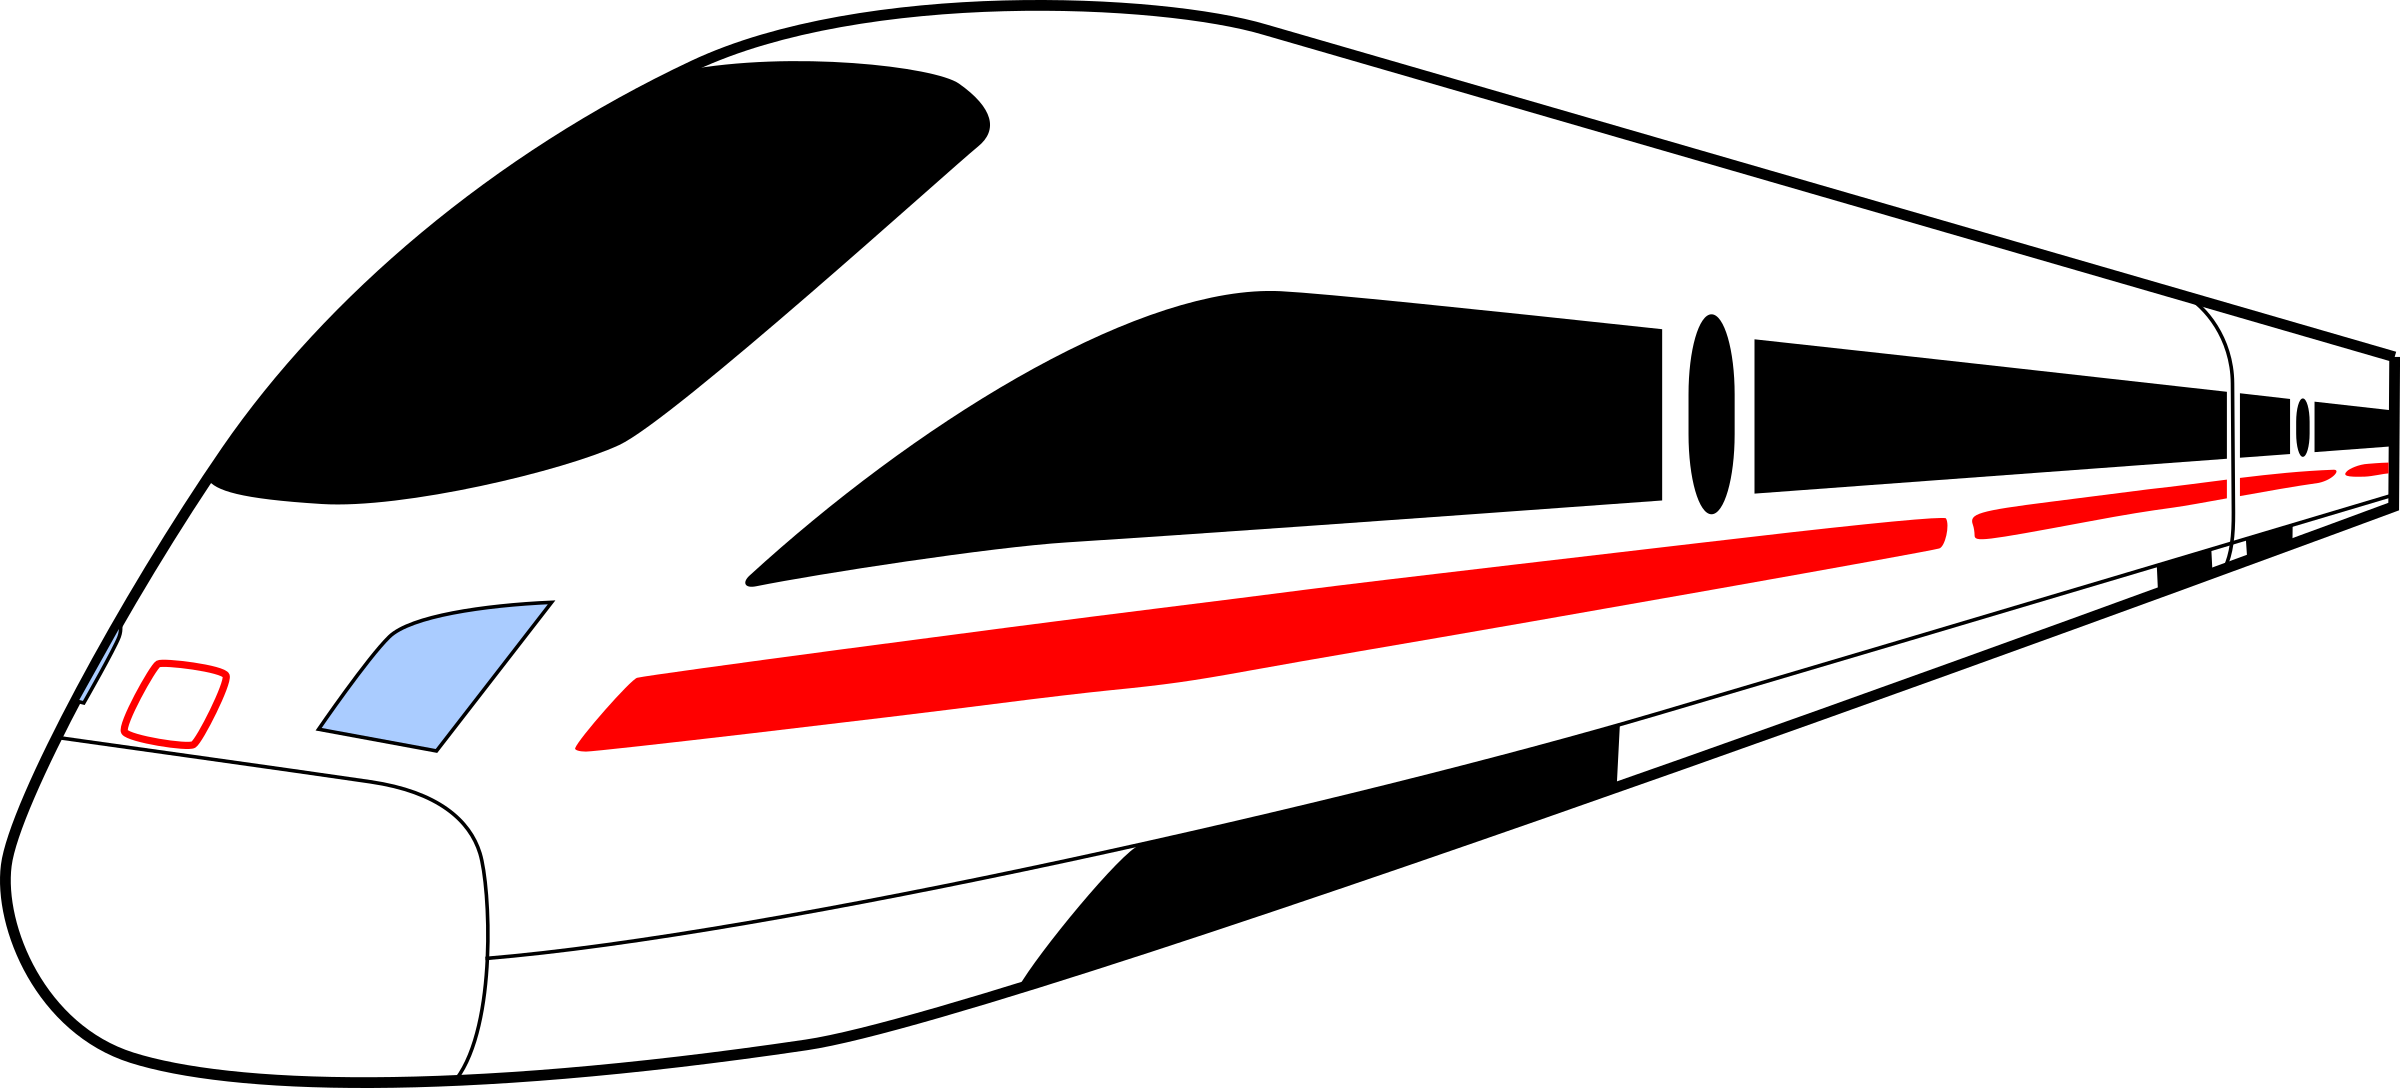 Clipart train icon. Ice icons png free